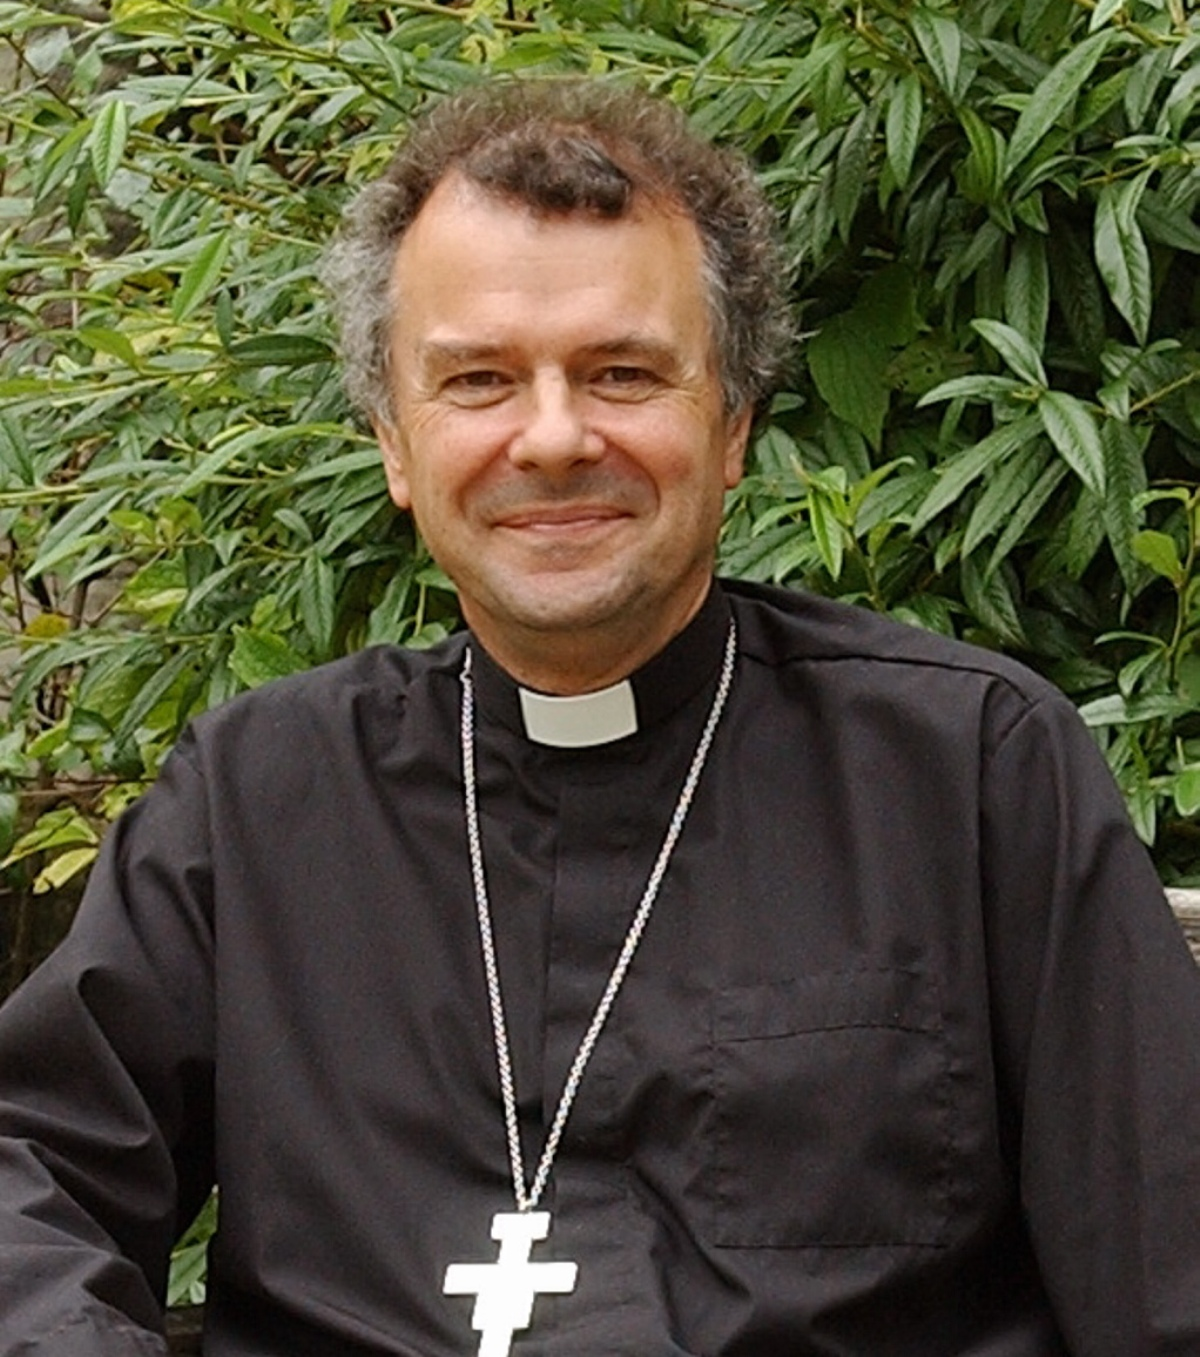 Bishop of Gloucester resigns